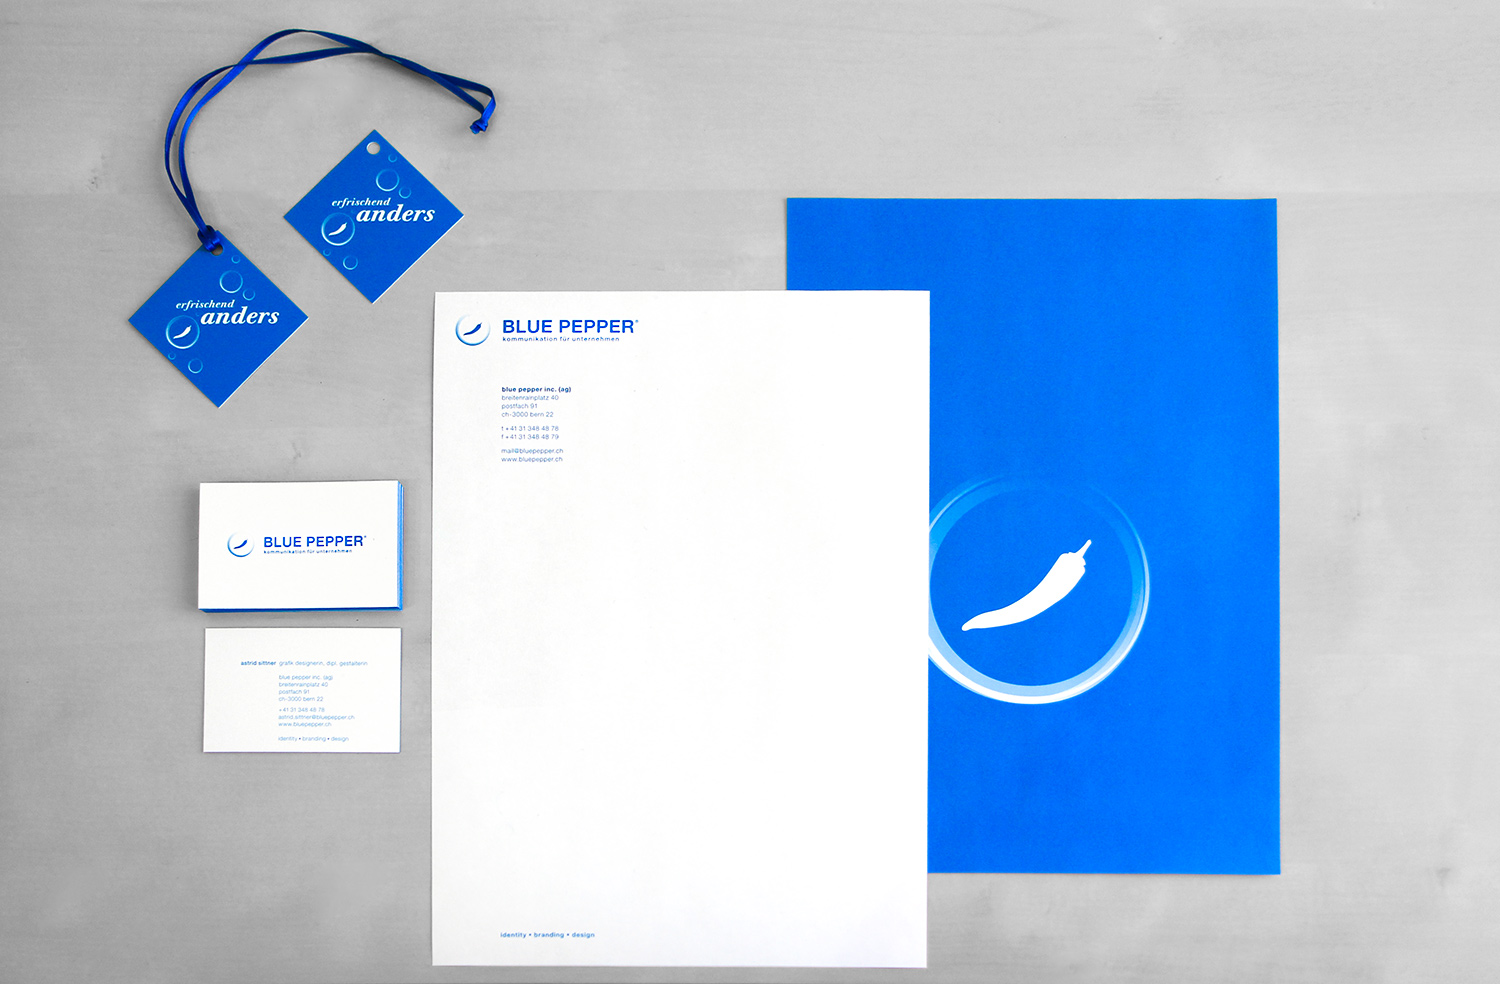 blue pepper - Corporate Design